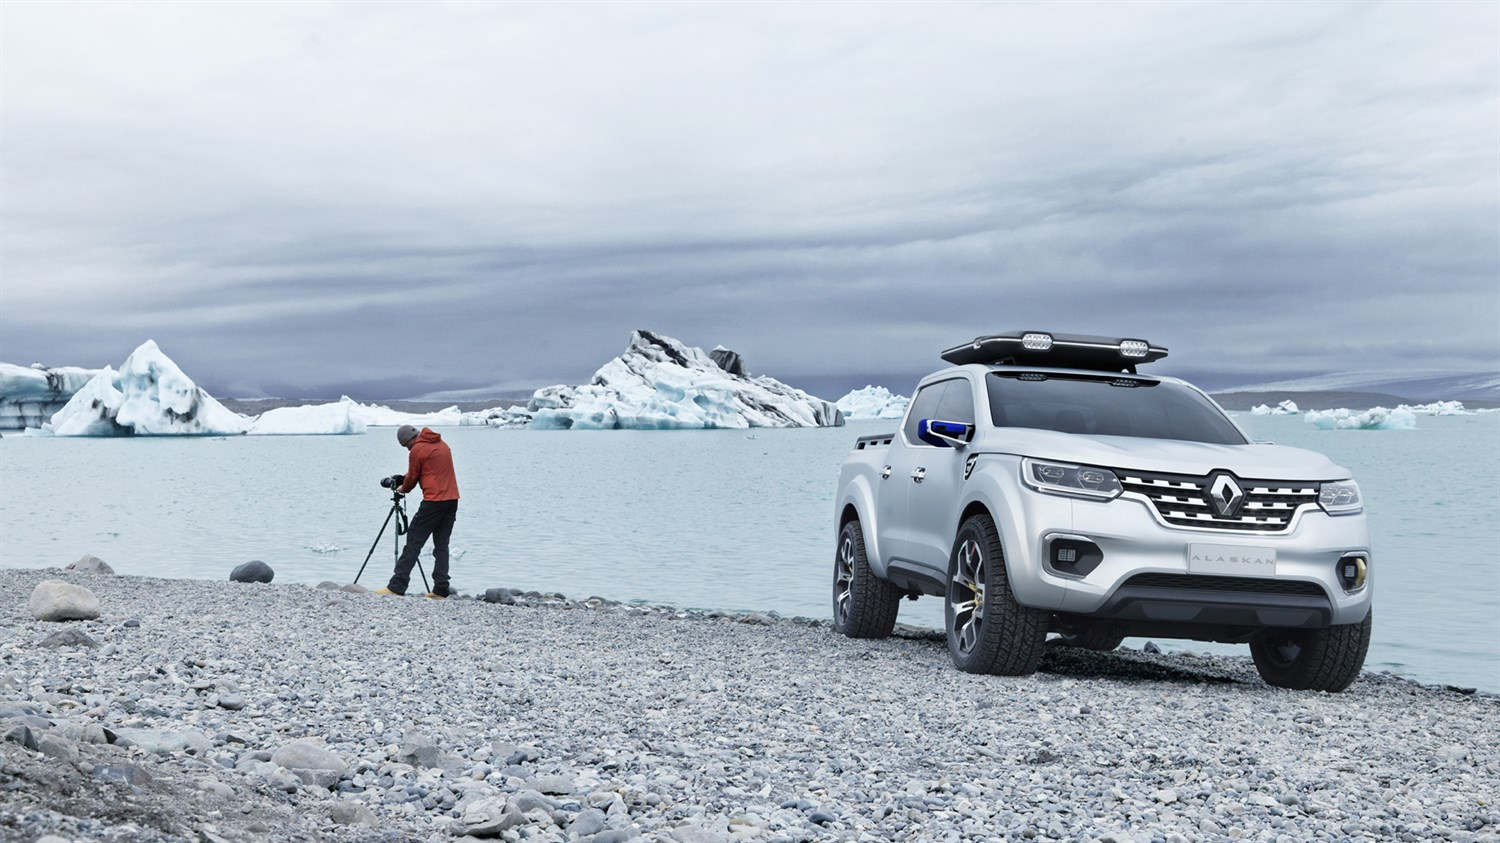 A man standing and clicking picture next to his Renault ALASKAN concept car